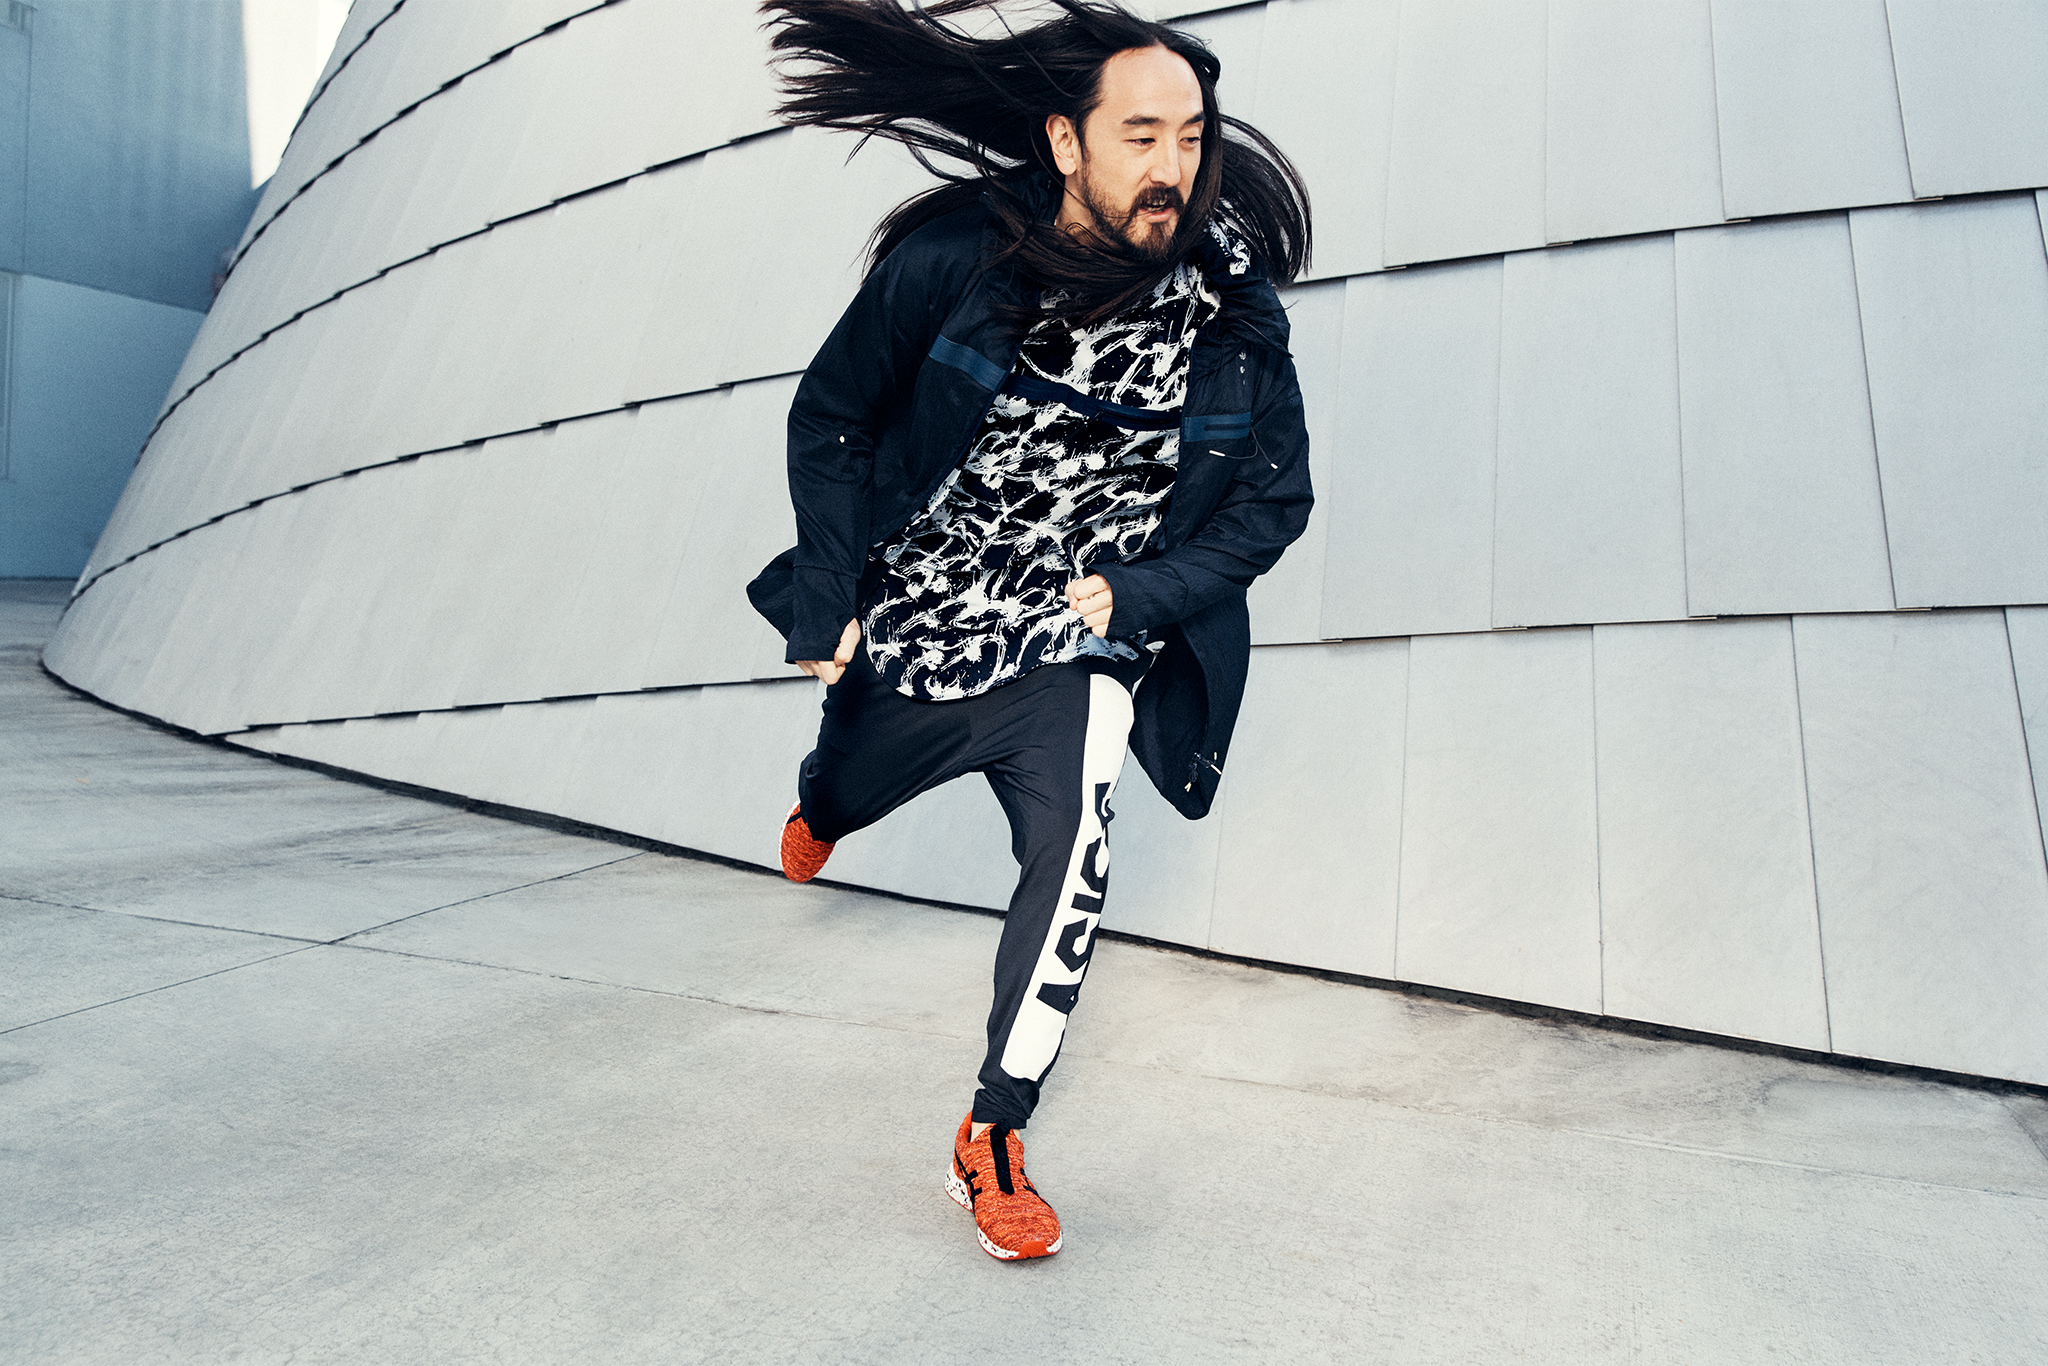 Steve Aoki in the promotional material for his Asics collaboration.